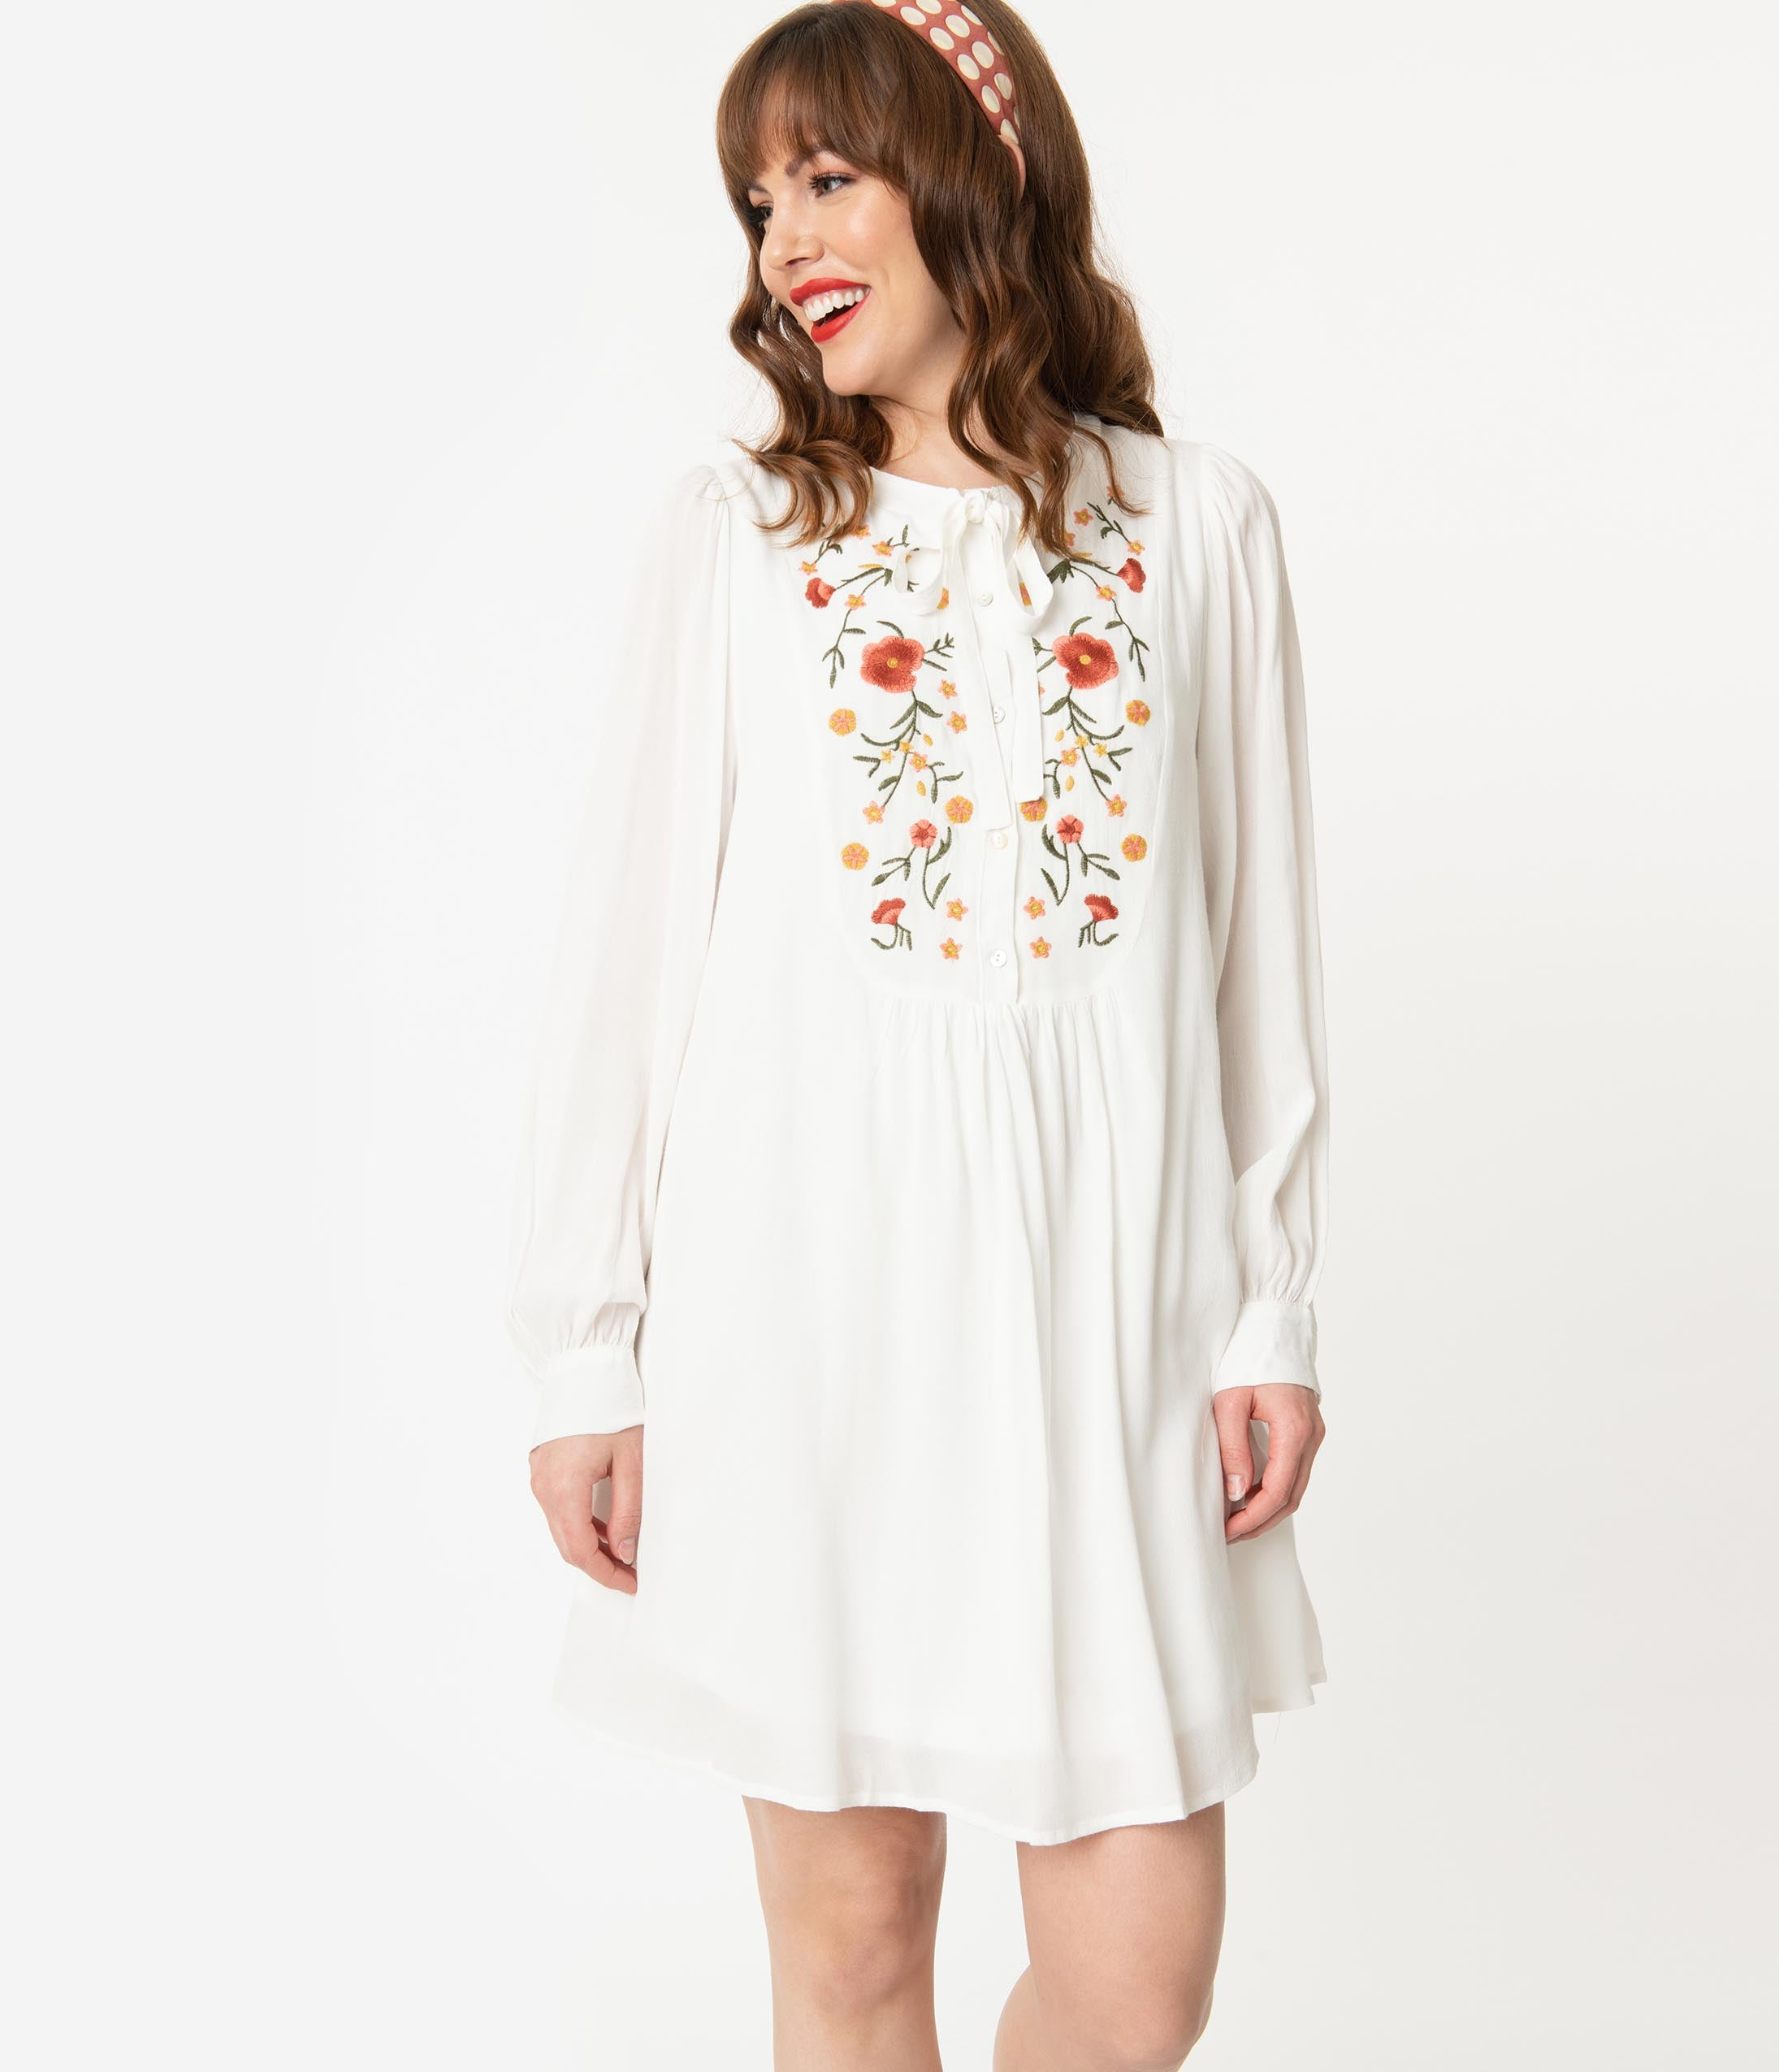 1960s Cocktail, Party, Prom, Evening Dresses Retro Style Off White Floral Embroidered Tunic Dress $68.00 AT vintagedancer.com